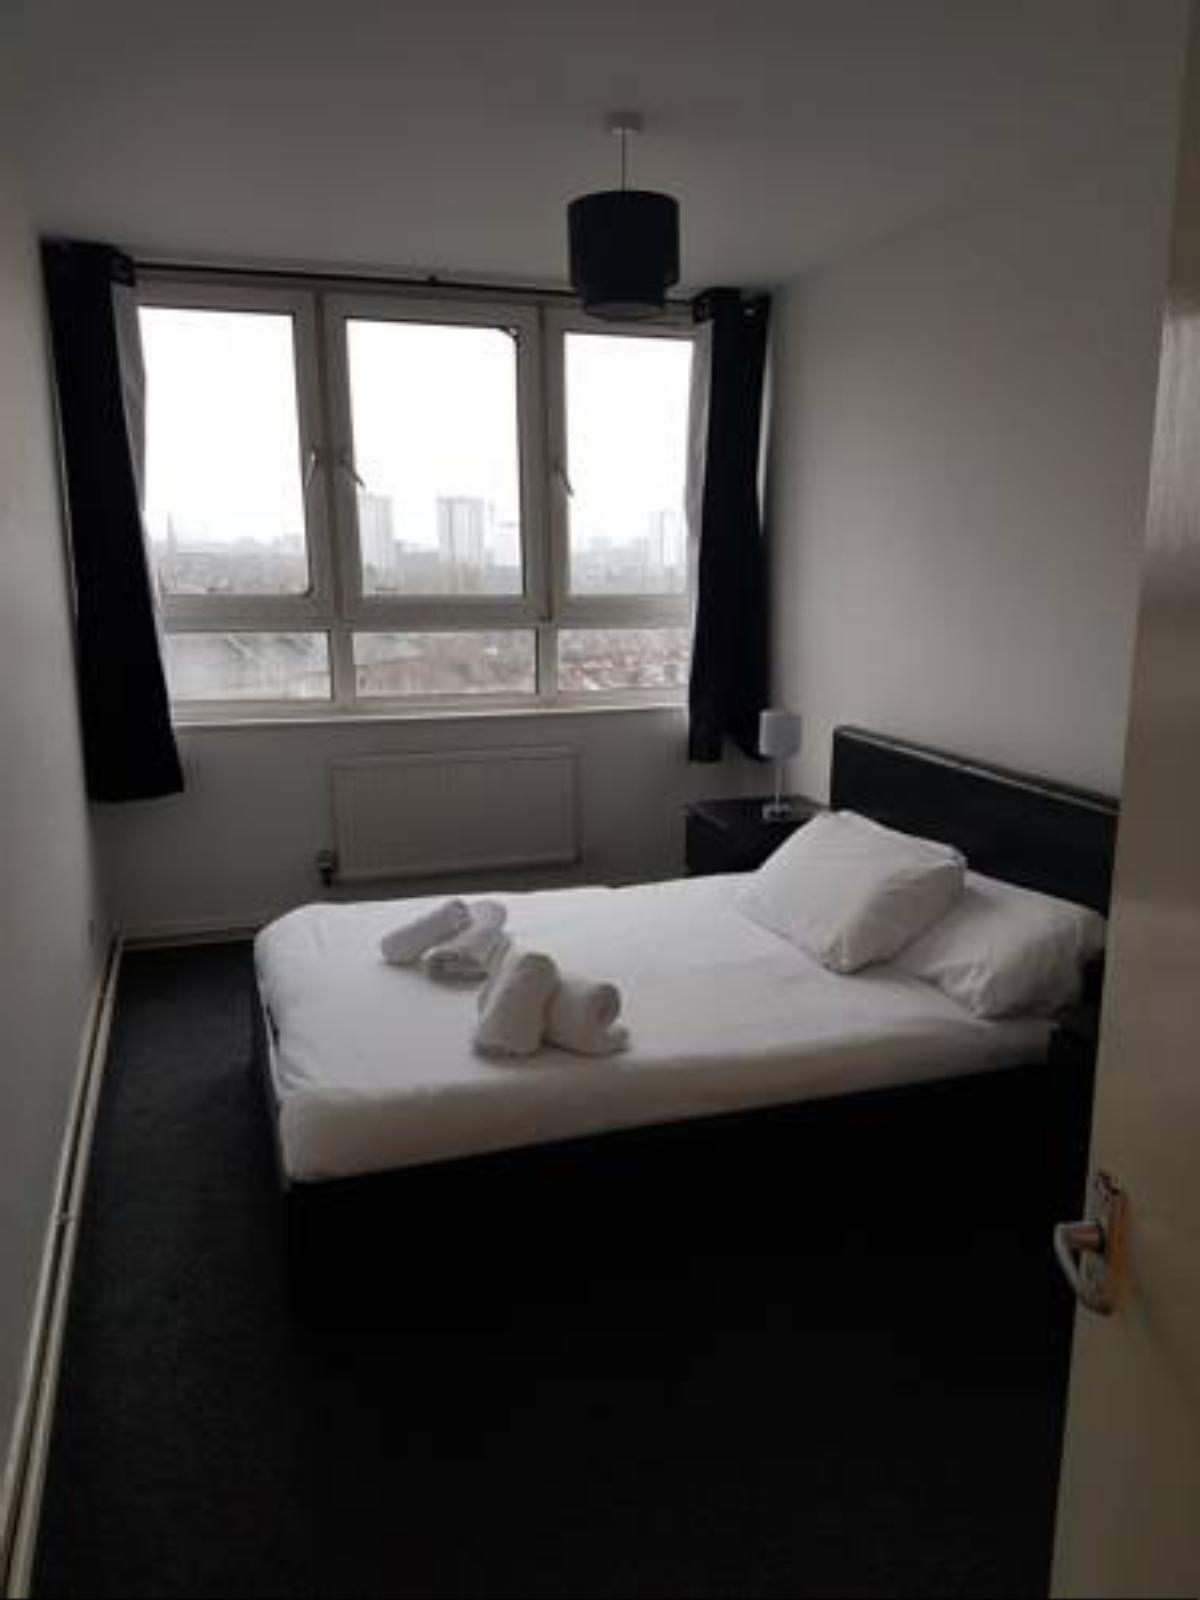 Center Apartment Hotel, London, United Kingdom - overview